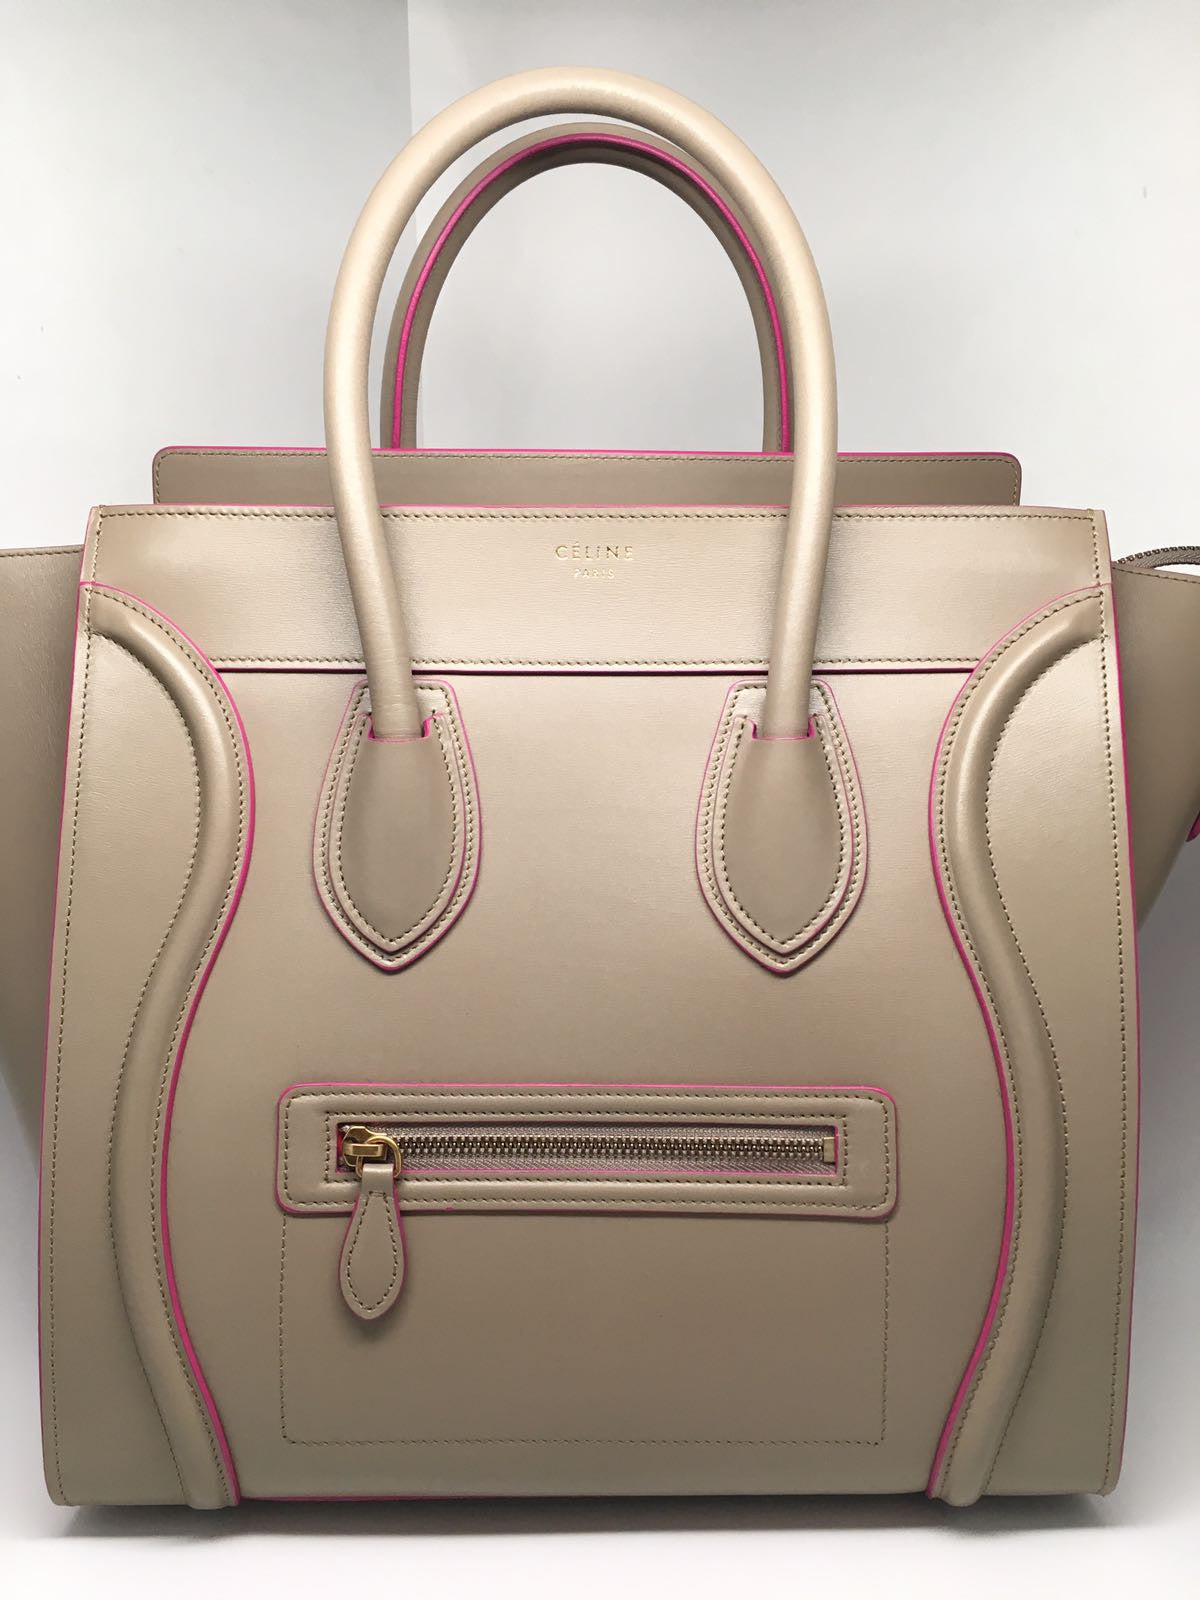 CELINE BEIGE & PINK LUGGAGE TOTE BAG